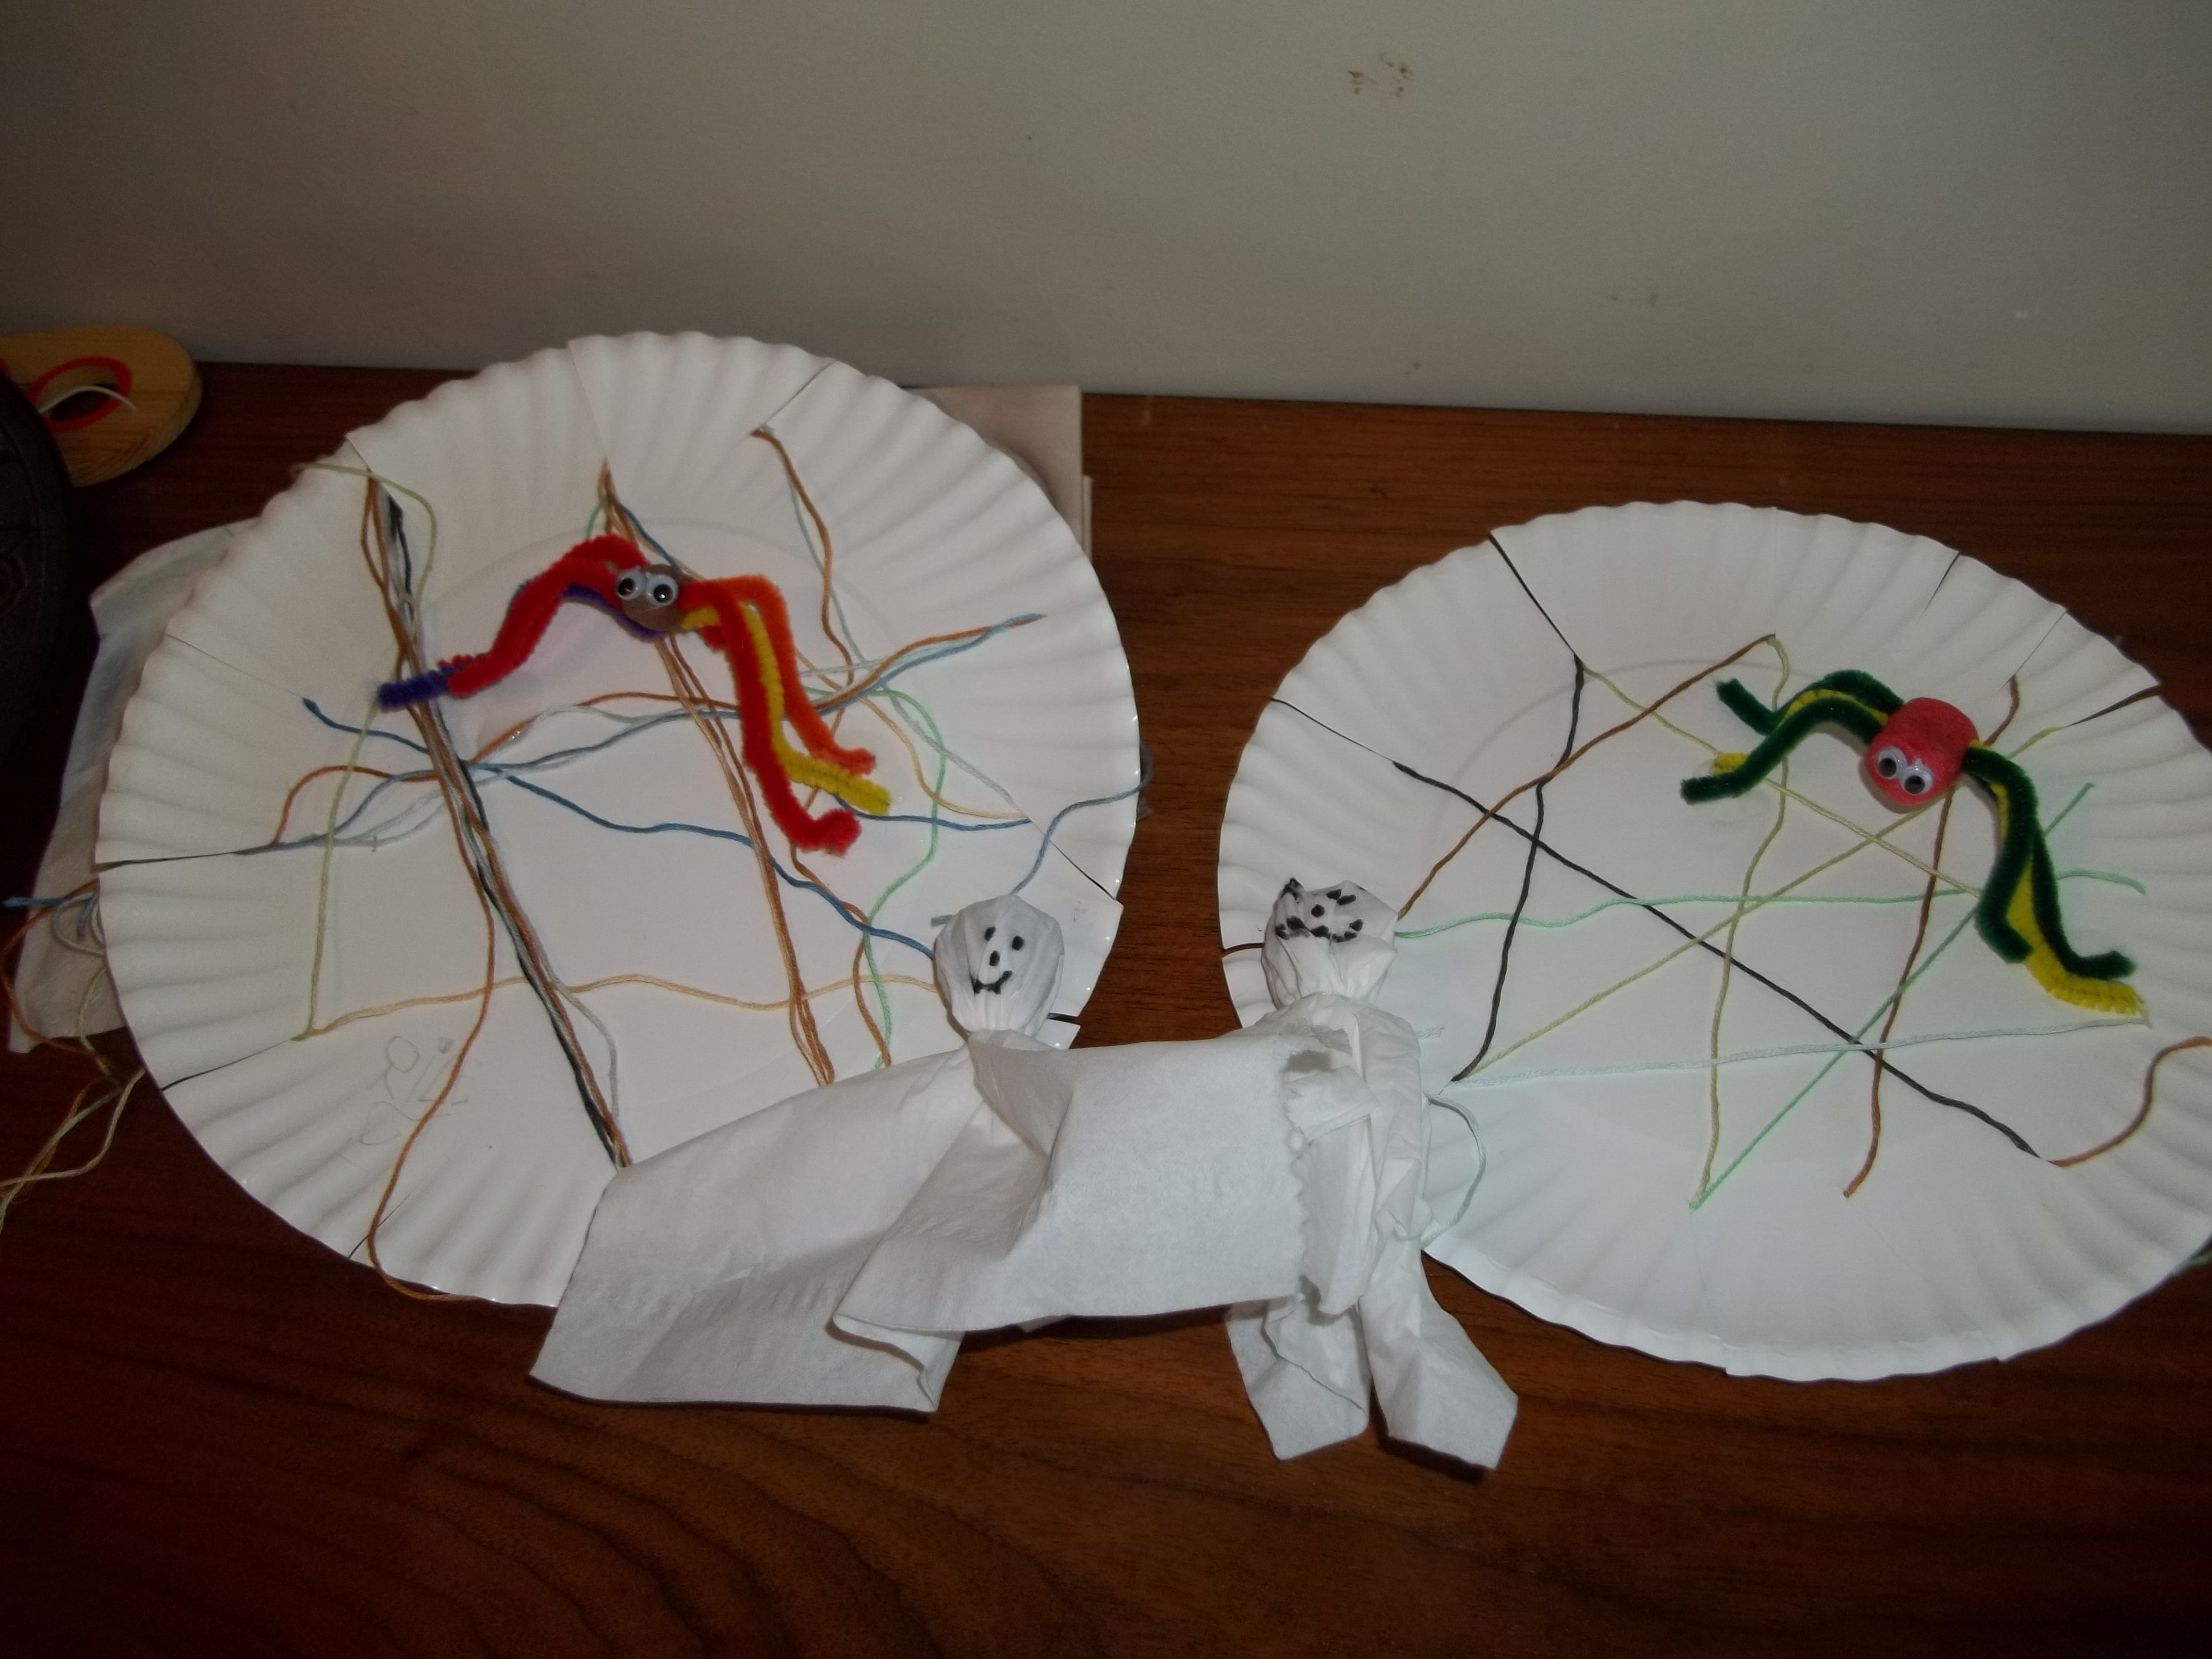 The very busy spider lesson plan